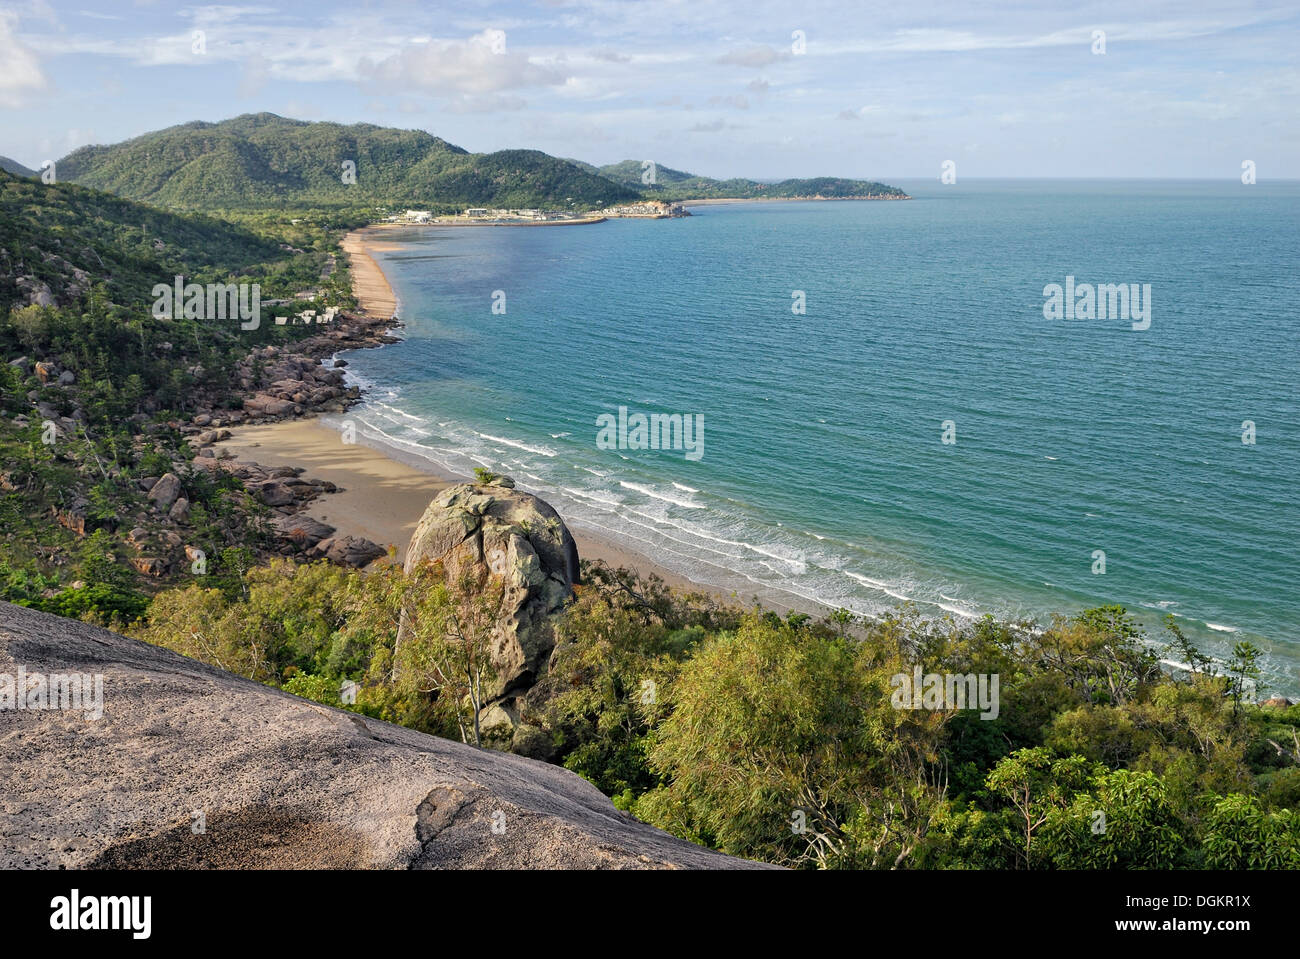 Rocky Bay, Nelly Bay and Geoffrey Bay, Magnetic Island, Queensland, Australia - Stock Image